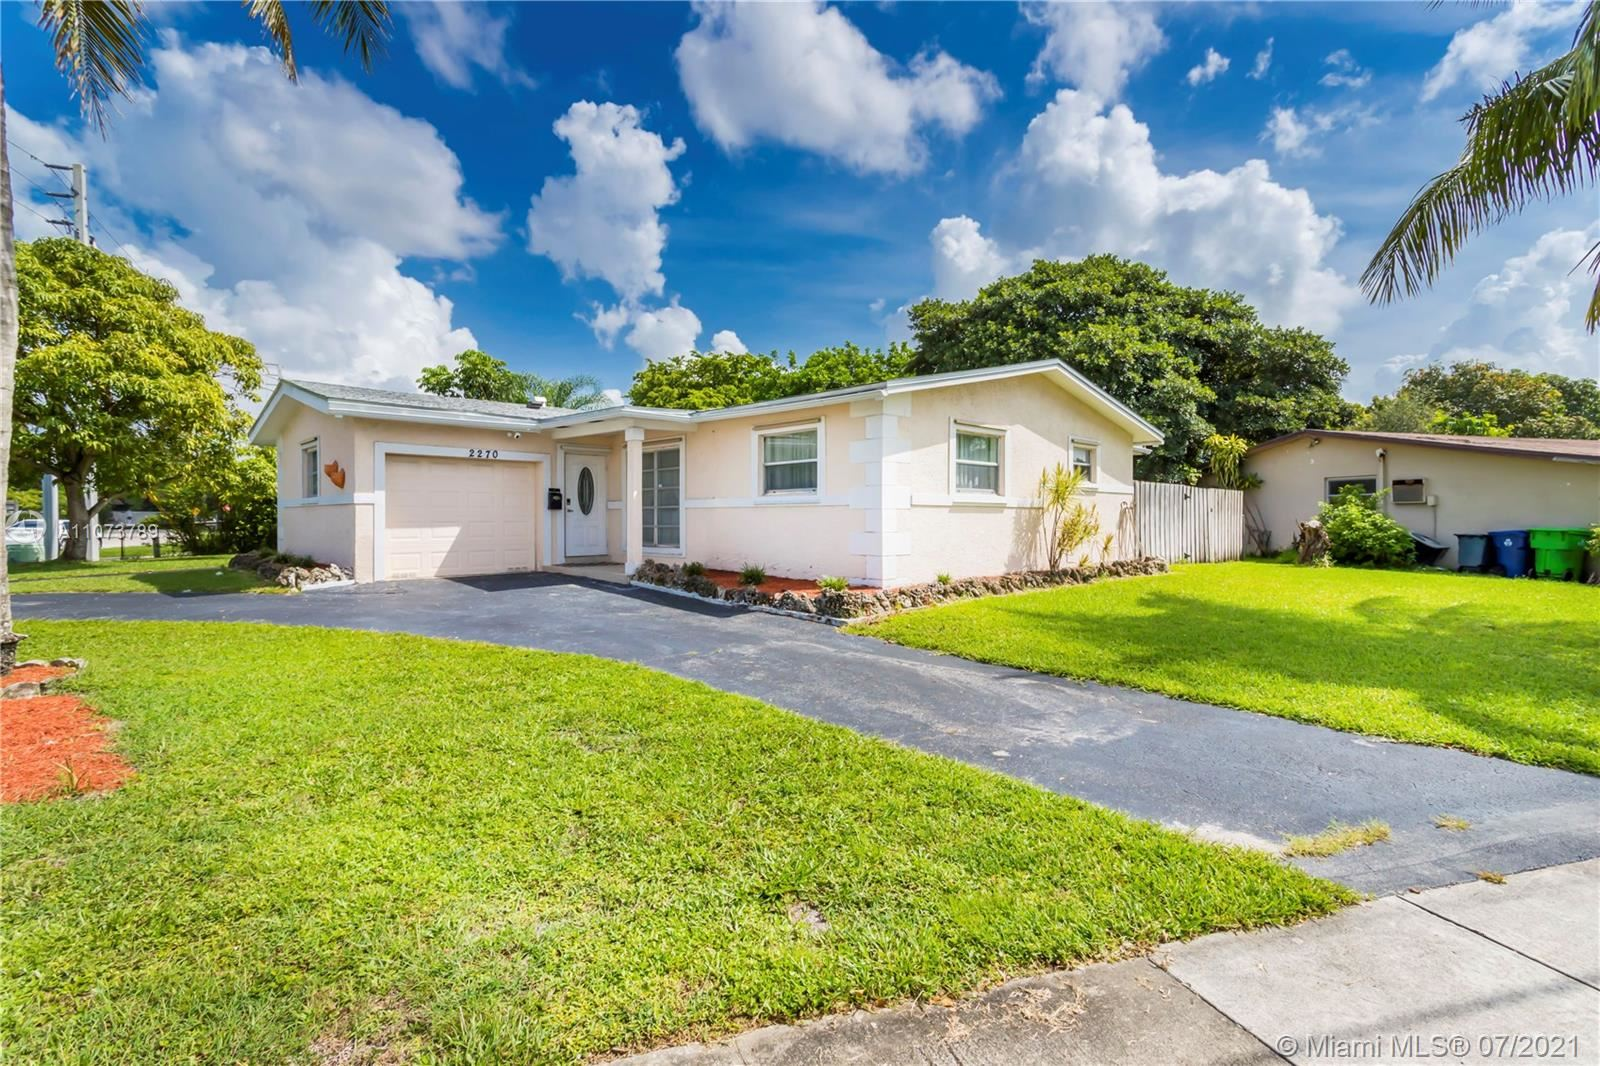 Photo of 2270 NW 74th Ave, Sunrise, FL 33313 (MLS # A11073789)